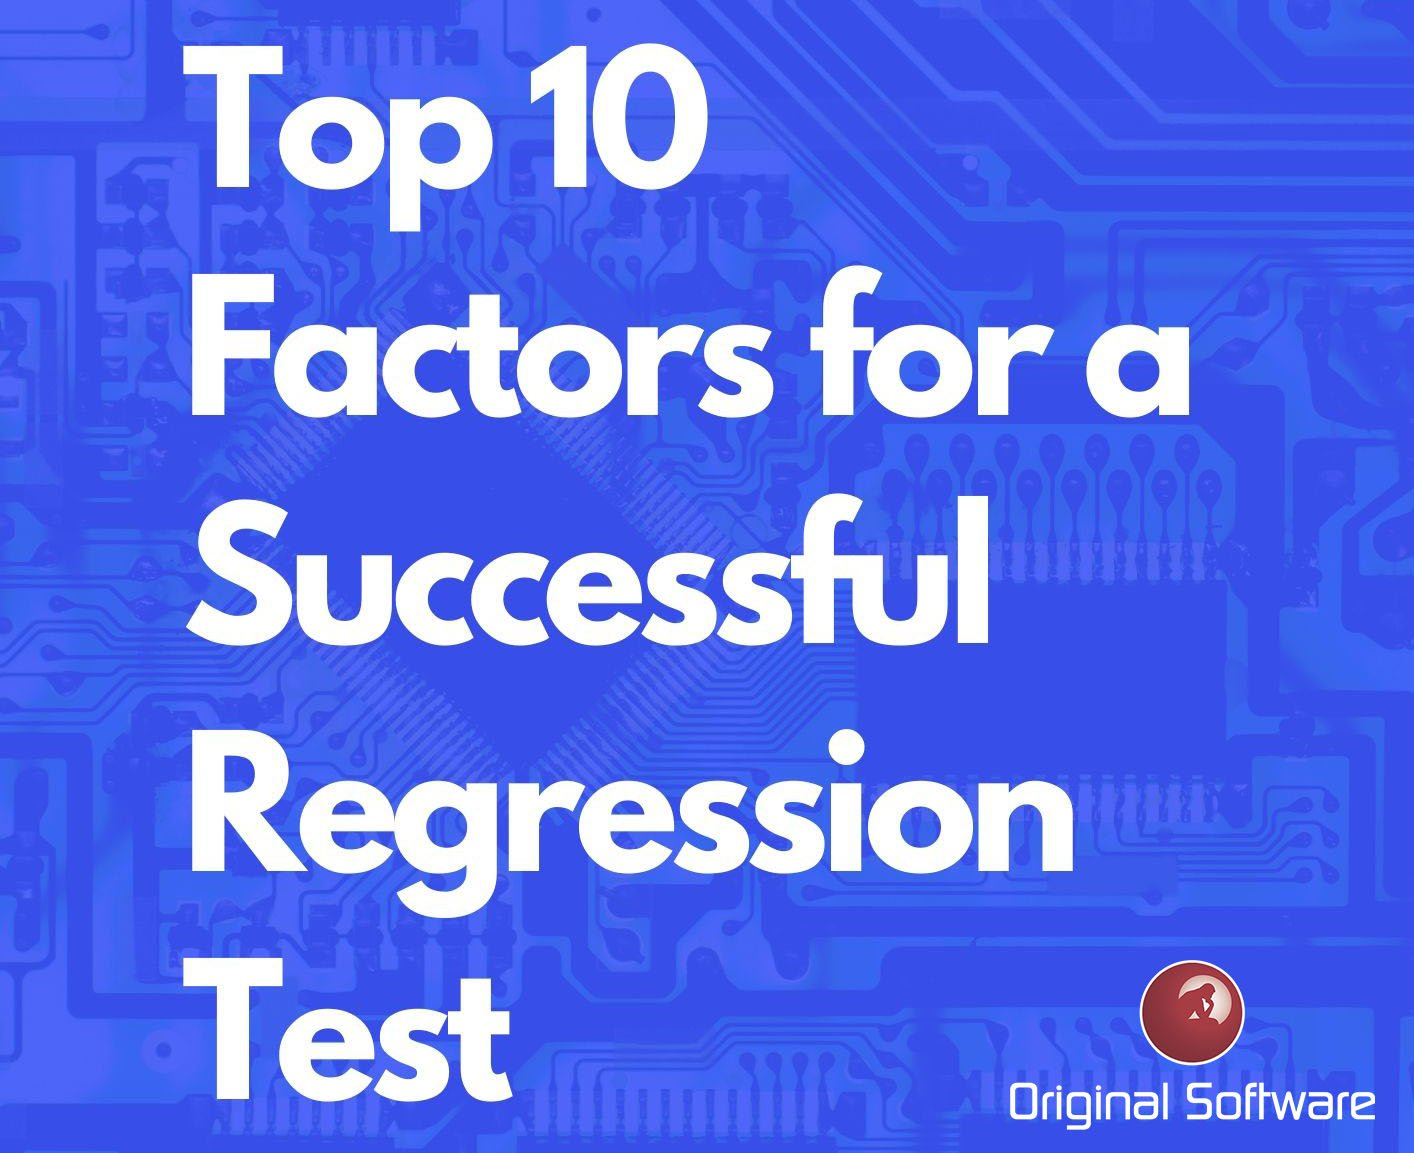 Original Software Top 10 Factors for a Successful Regression Test Header Image